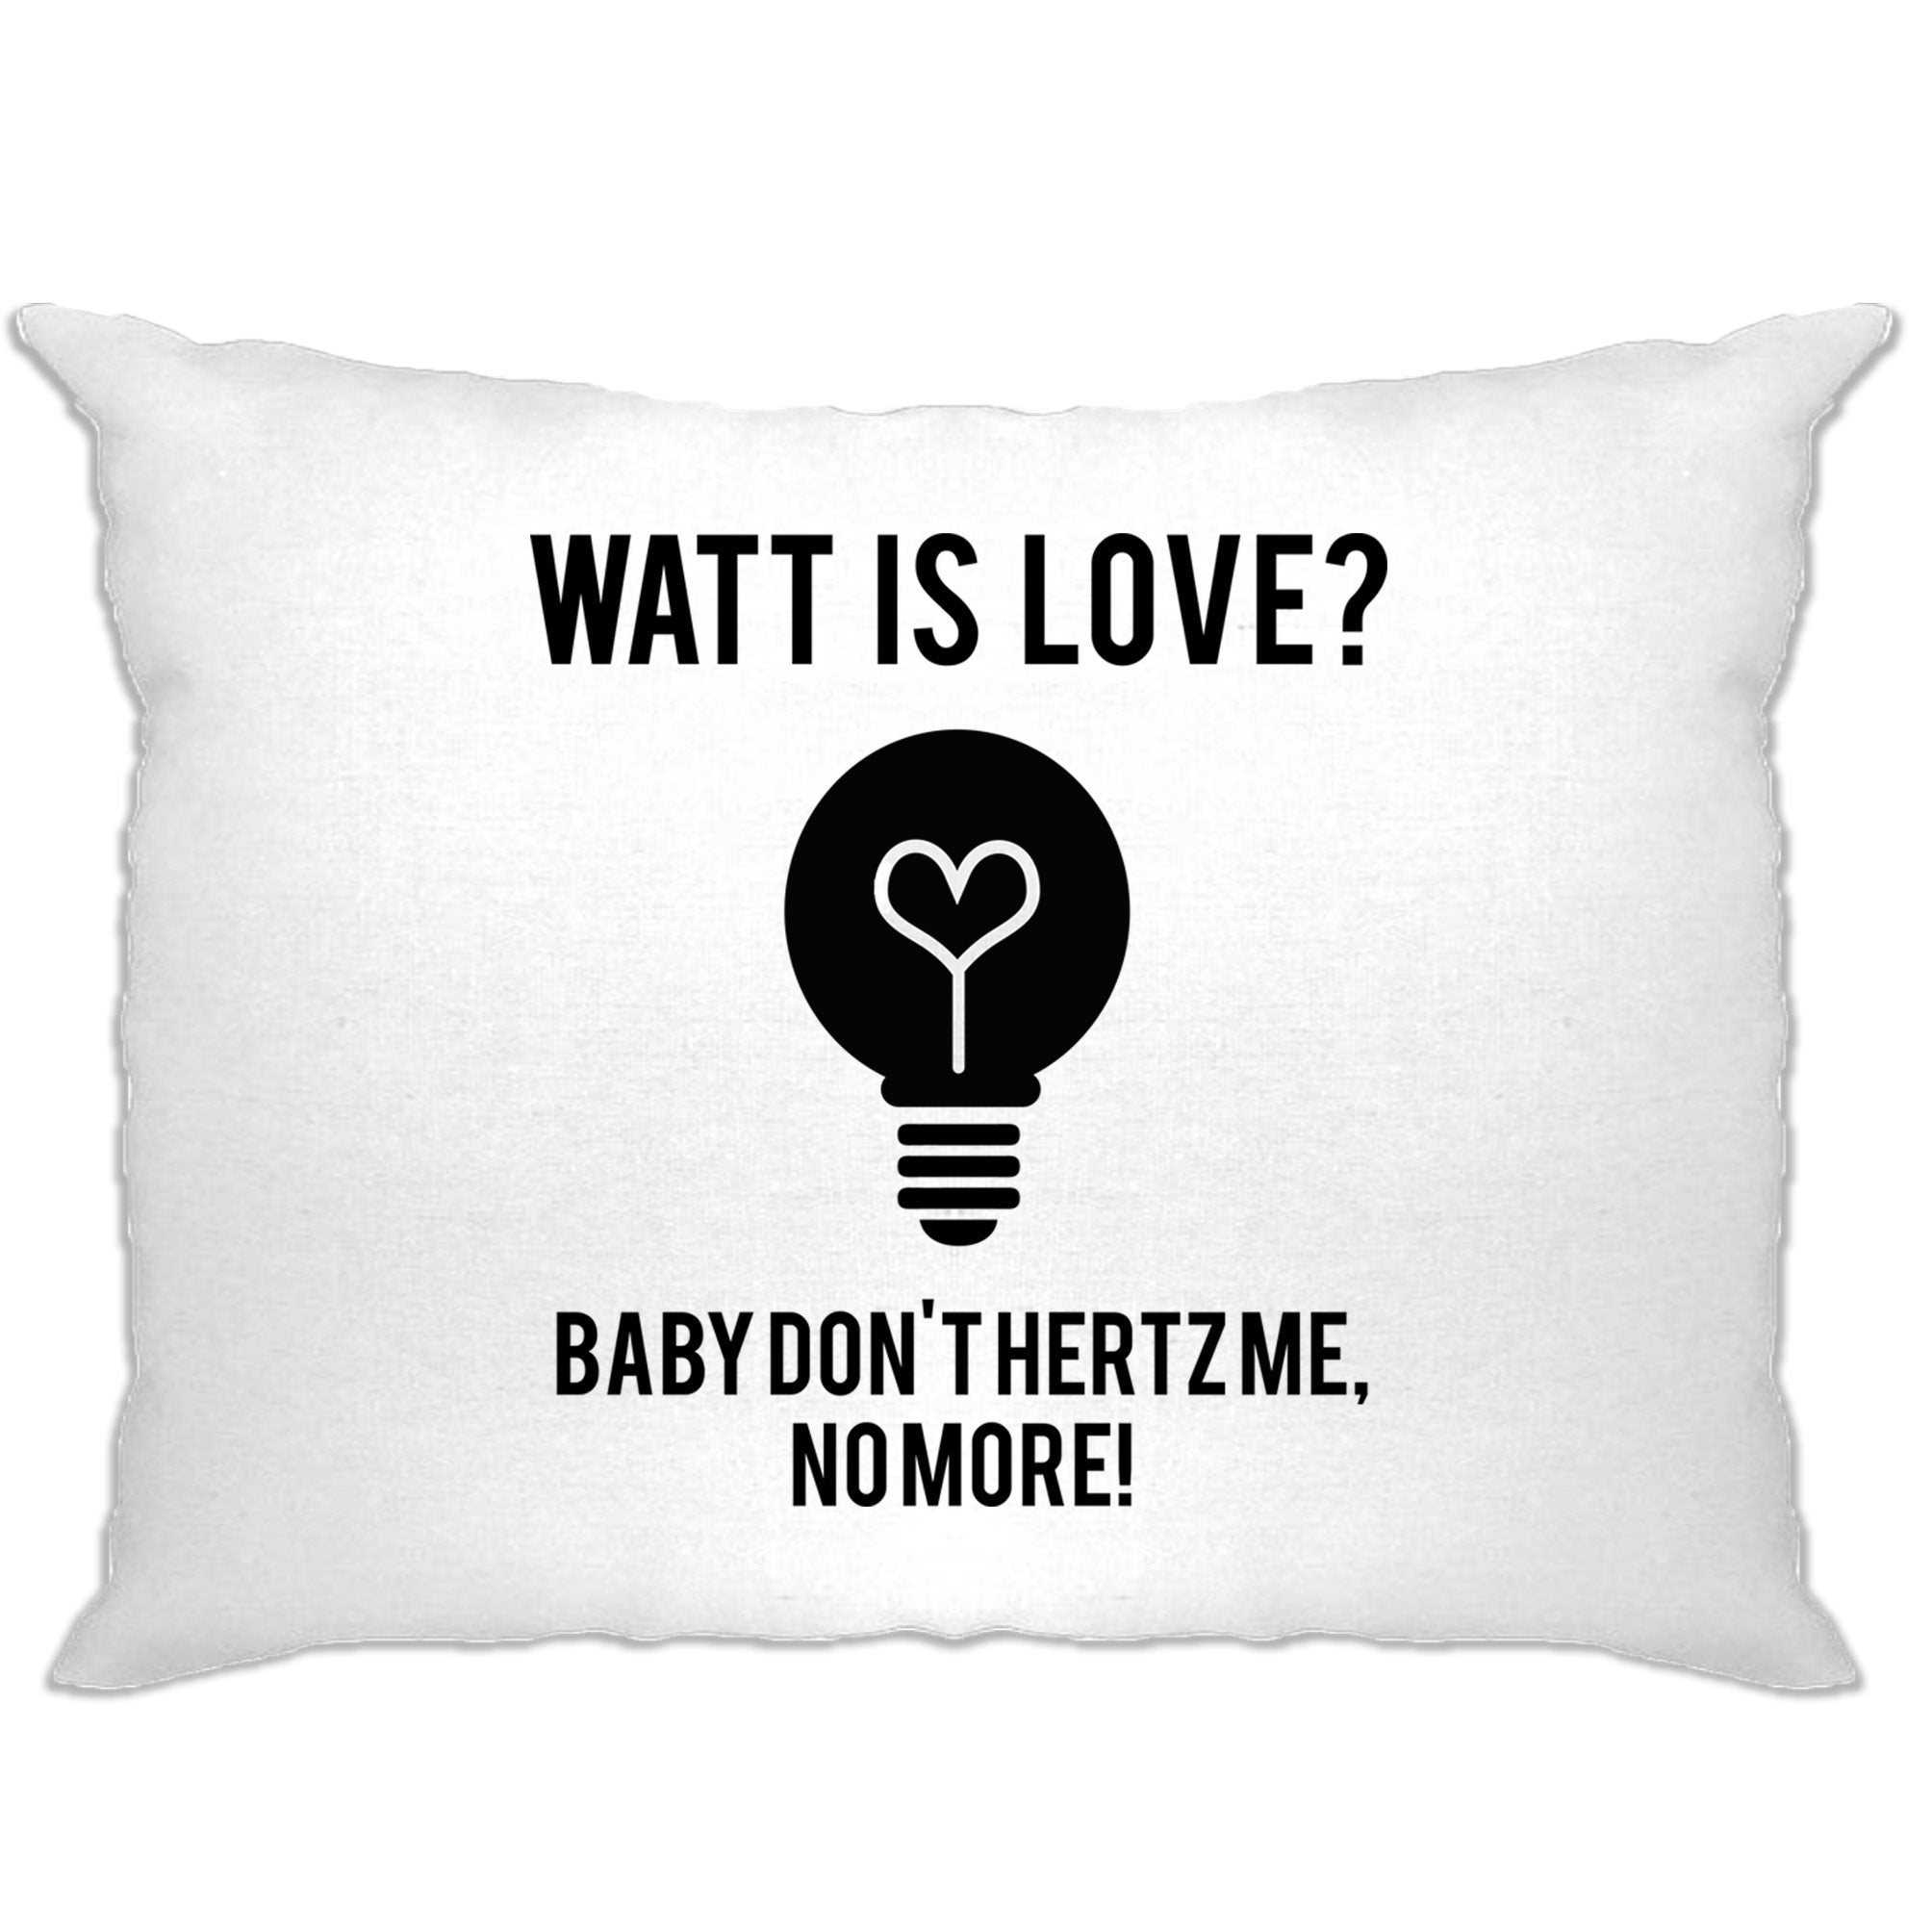 Novelty Nerd Pillow Case Watt Is Love, Baby Don't Hertz Me